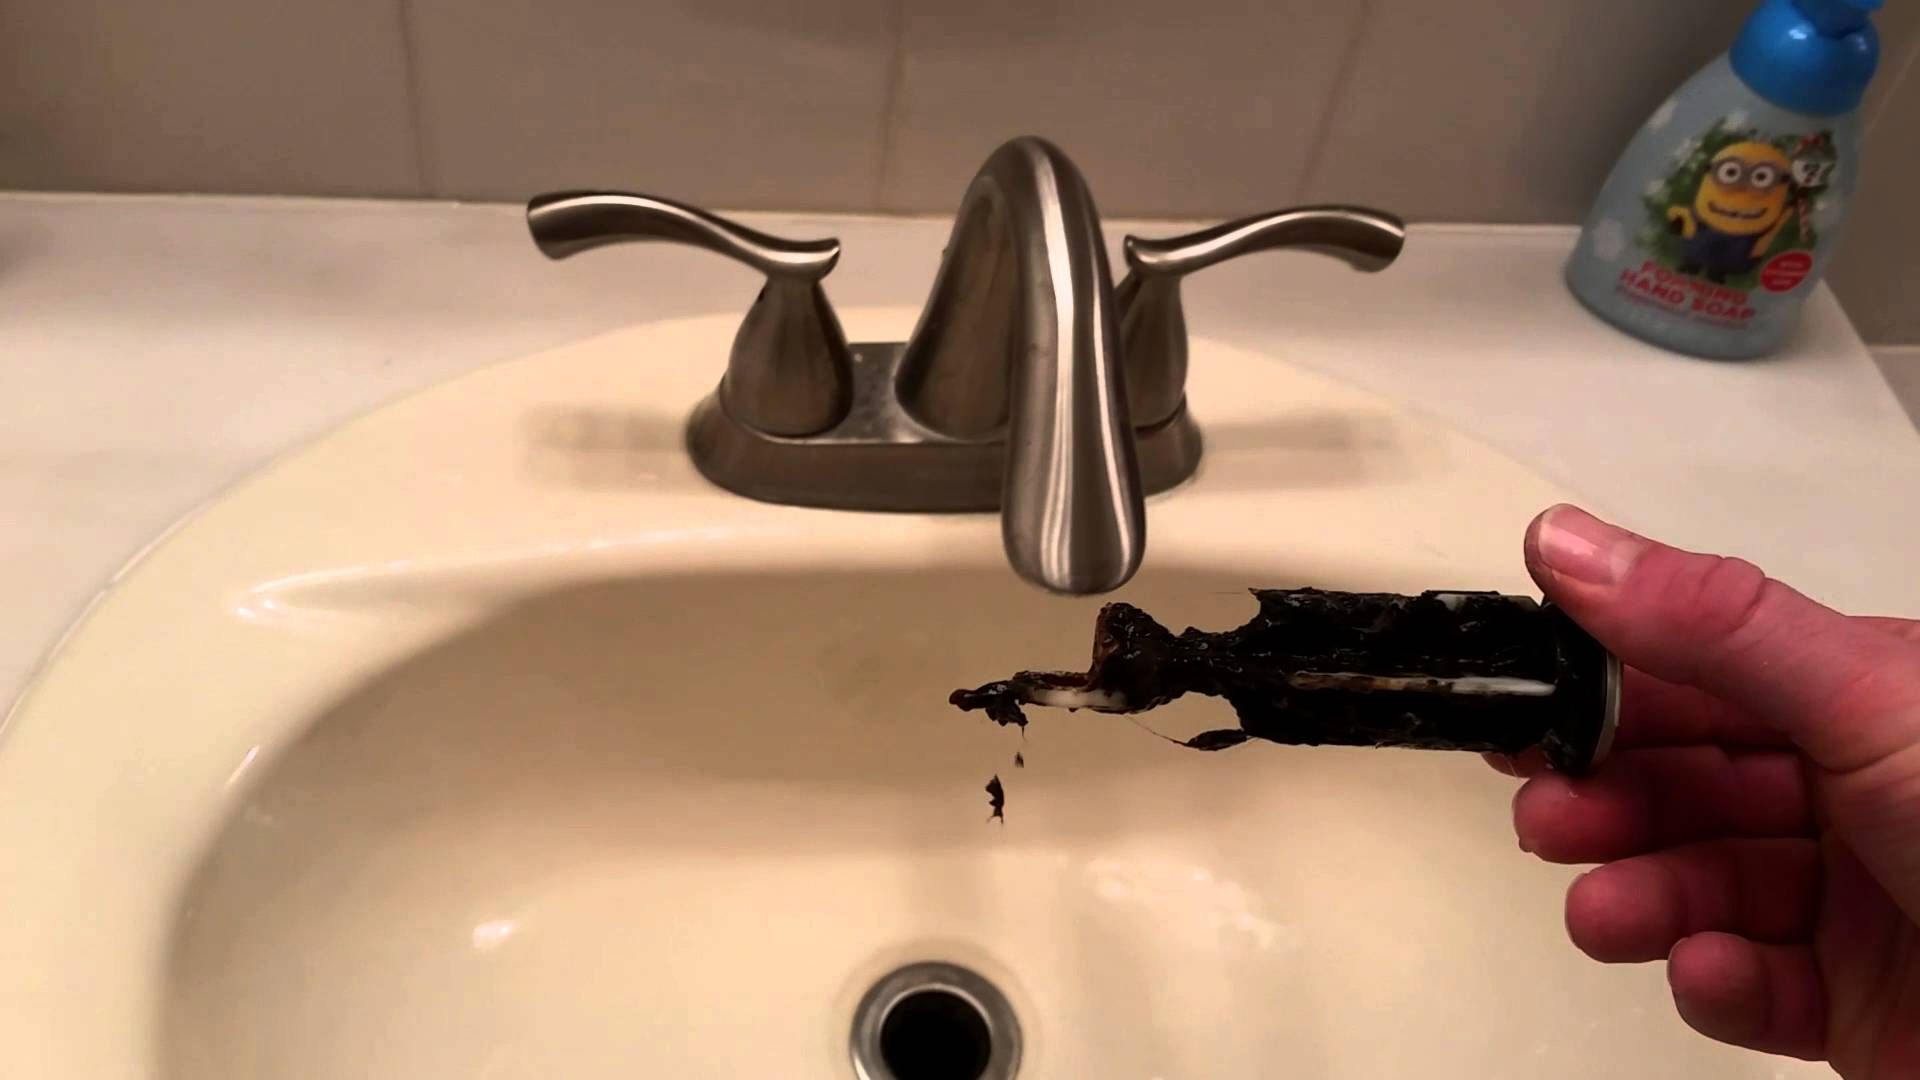 Bathroom Sink Quick Fix How To Remove And Clean The Stopper Unclog Si Projects To Try